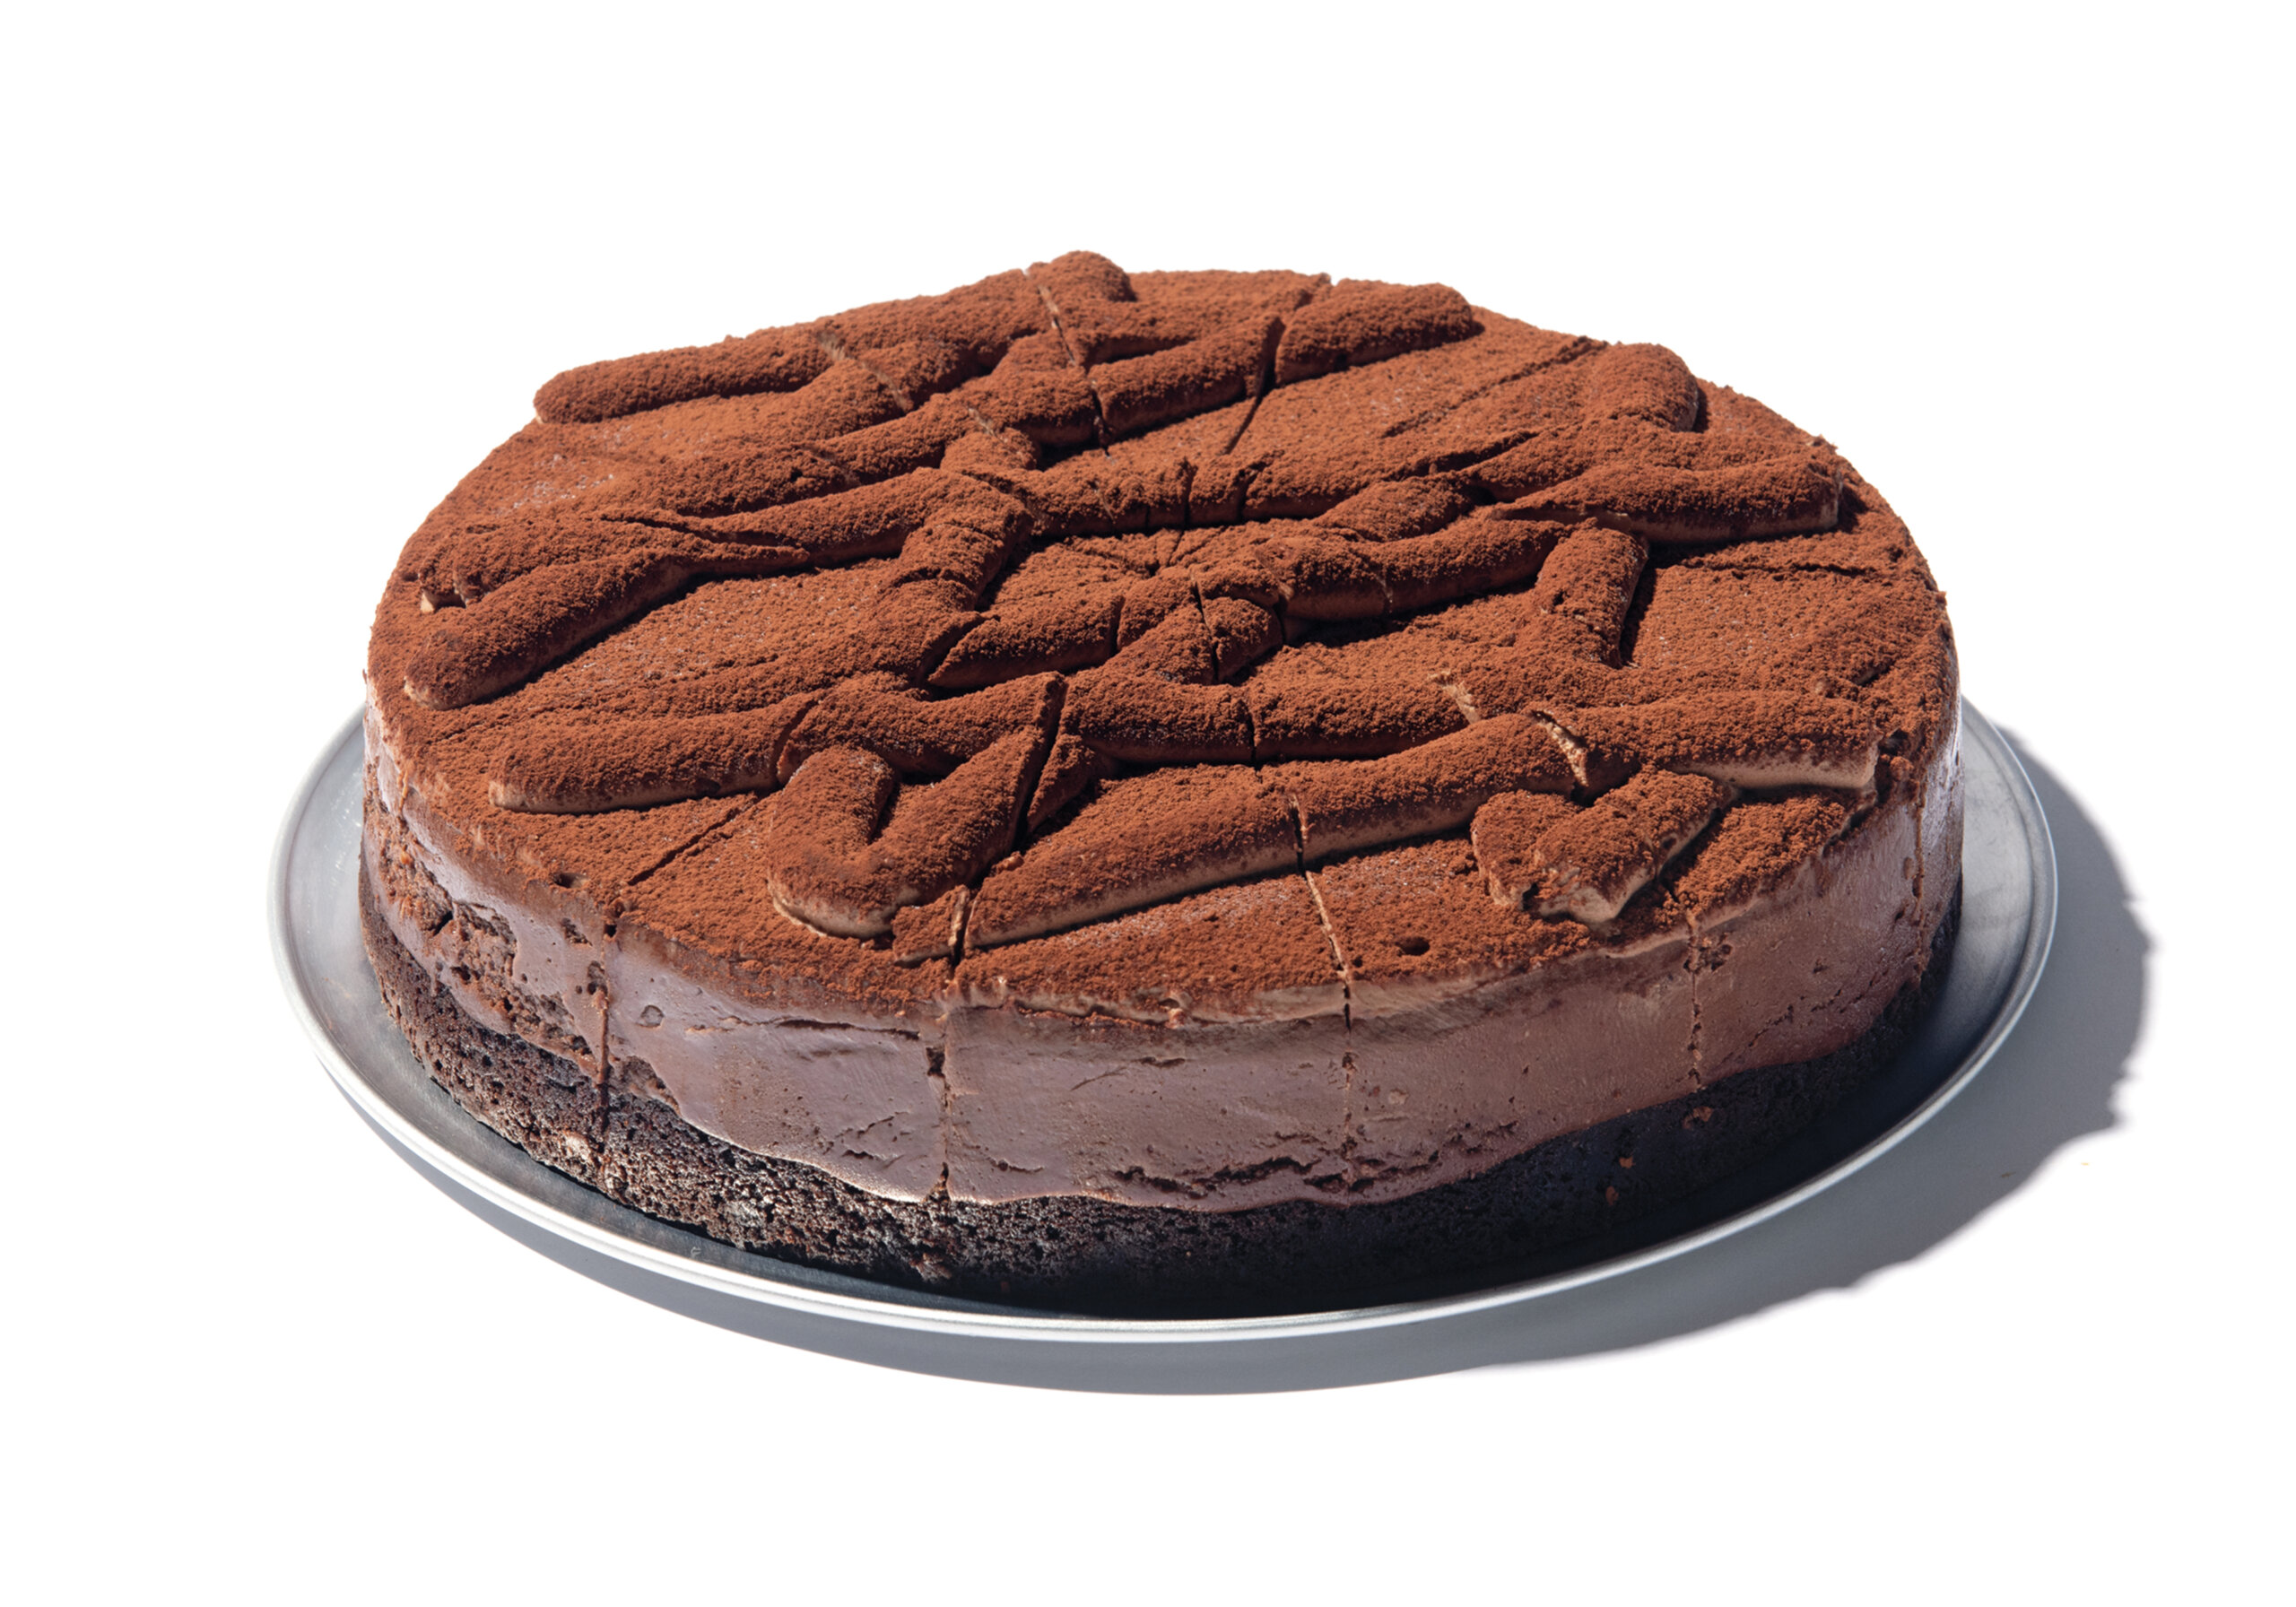 Eli's Double Chocolate Cheesecake made with Ghirardelli